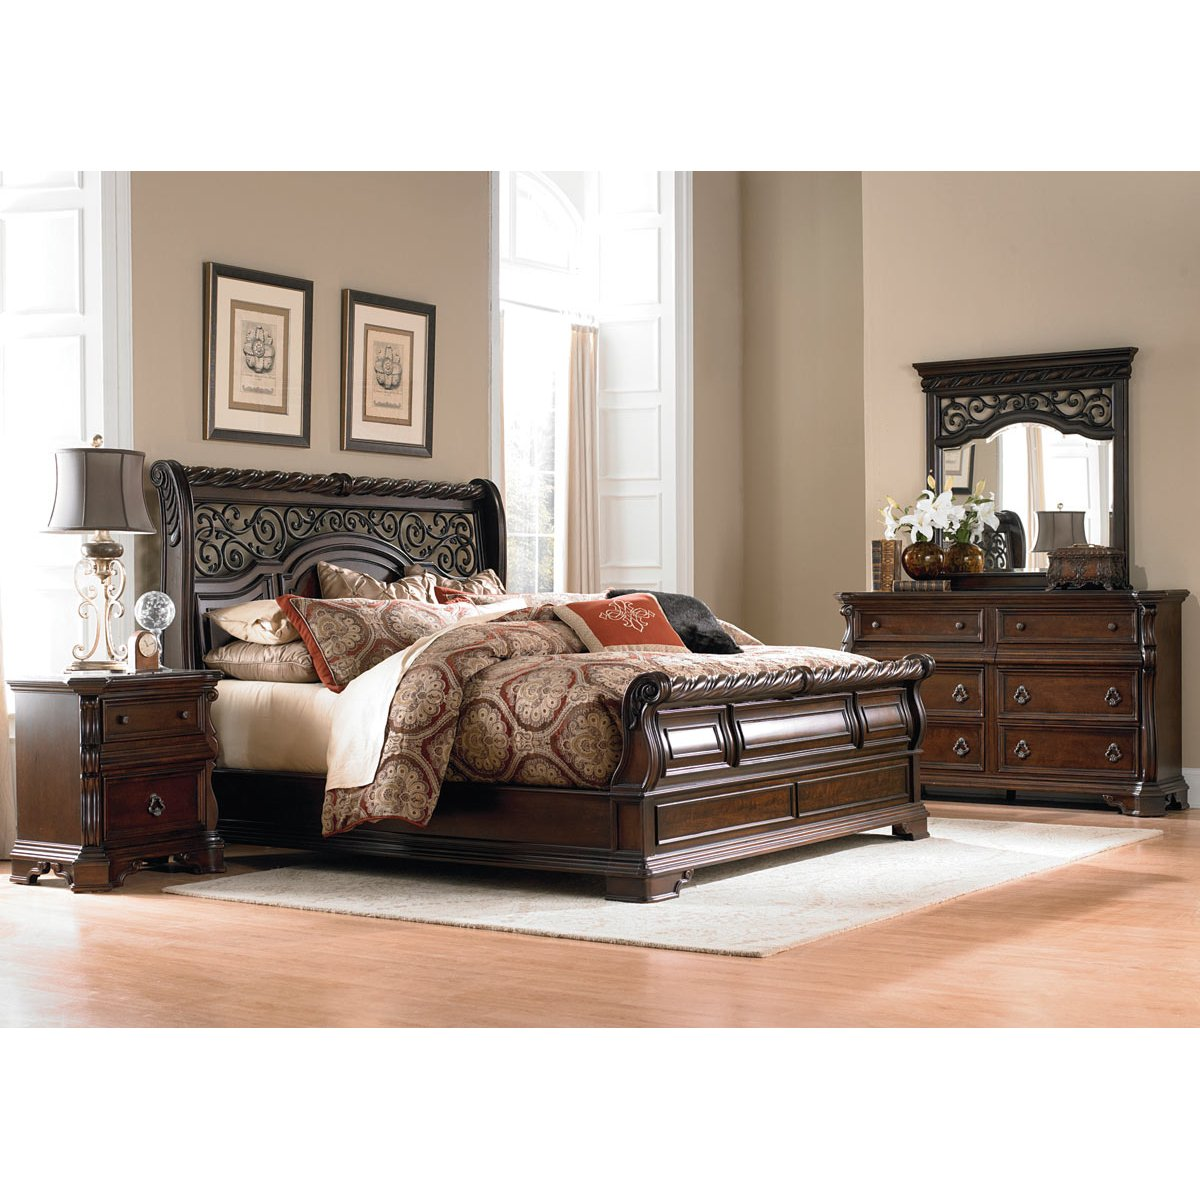 pictures of bedroom sets.  Brownstone 6 Piece Queen Bedroom Set Arbor Place Buy a queen bedroom set at RC Willey